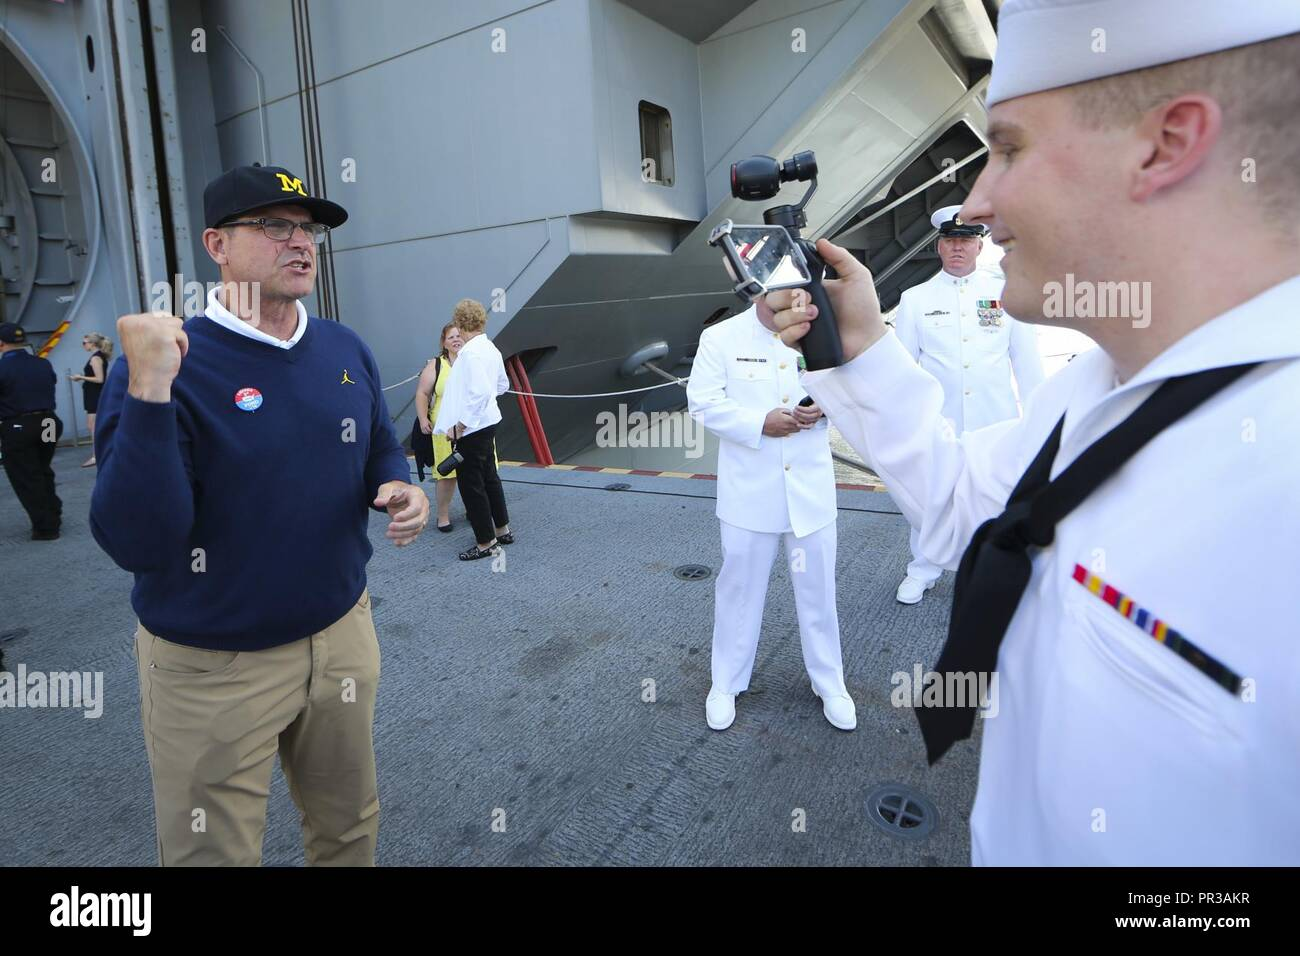 Va. (July 22, 2017) – Jim Harbough, head football coach at University of Michigan, records a video message for the crew of USS Gerald R. Ford (CVN 78) during the ship's commissioning ceremony at Naval Station Norfolk. Ford is the lead ship of the Ford-class aircraft carriers, and the first new U.S. aircraft carrier design in 40 years. - Stock Image